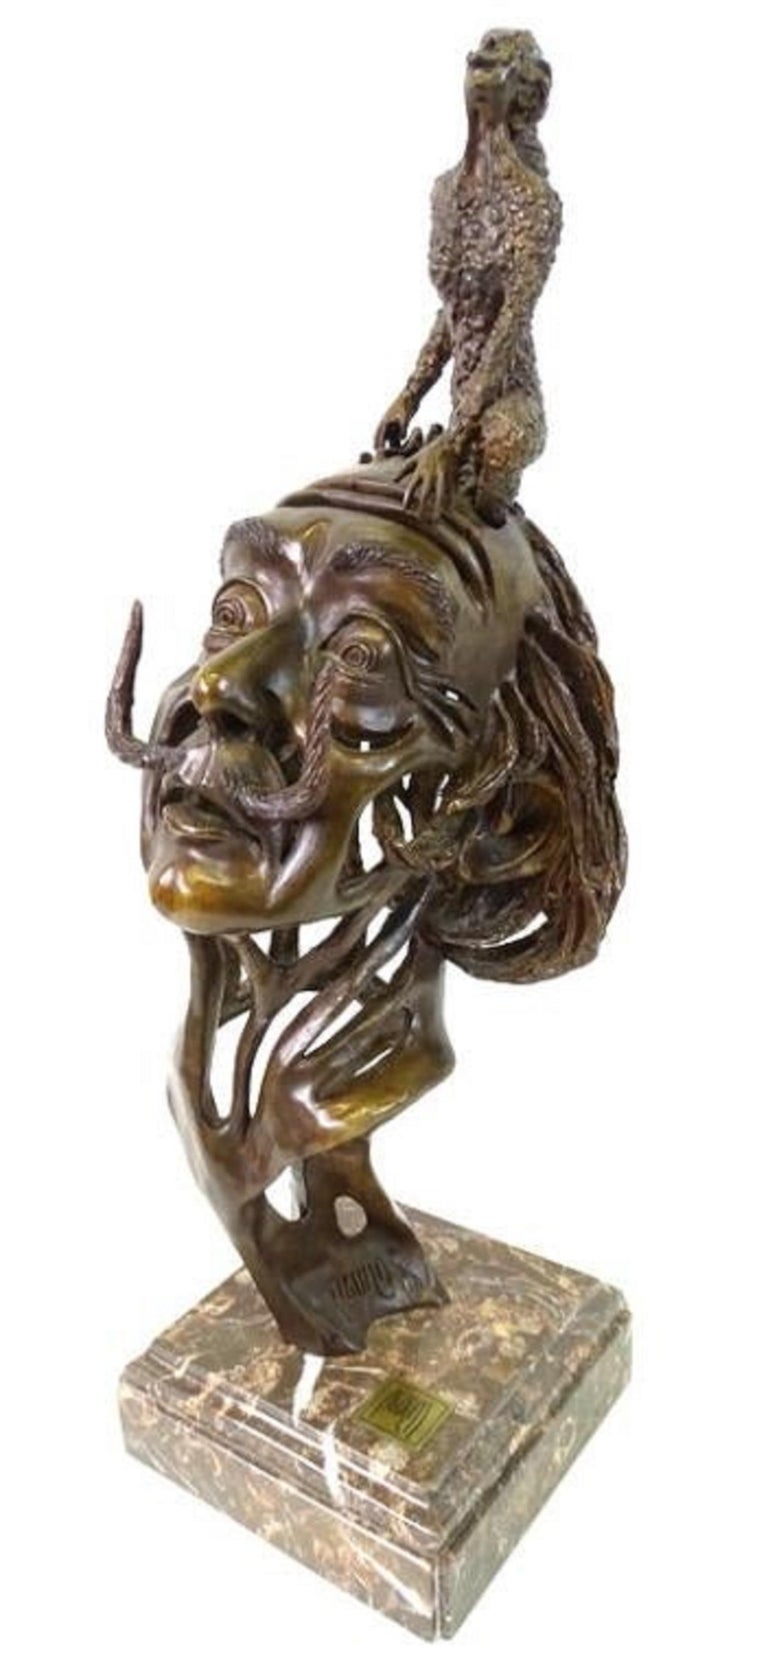 Carlos Aguilar y Linares Abstract Sculpture - Large Salvador Dali Surrealist Bronze Portrait Sculpture Mexican Master Aguilar